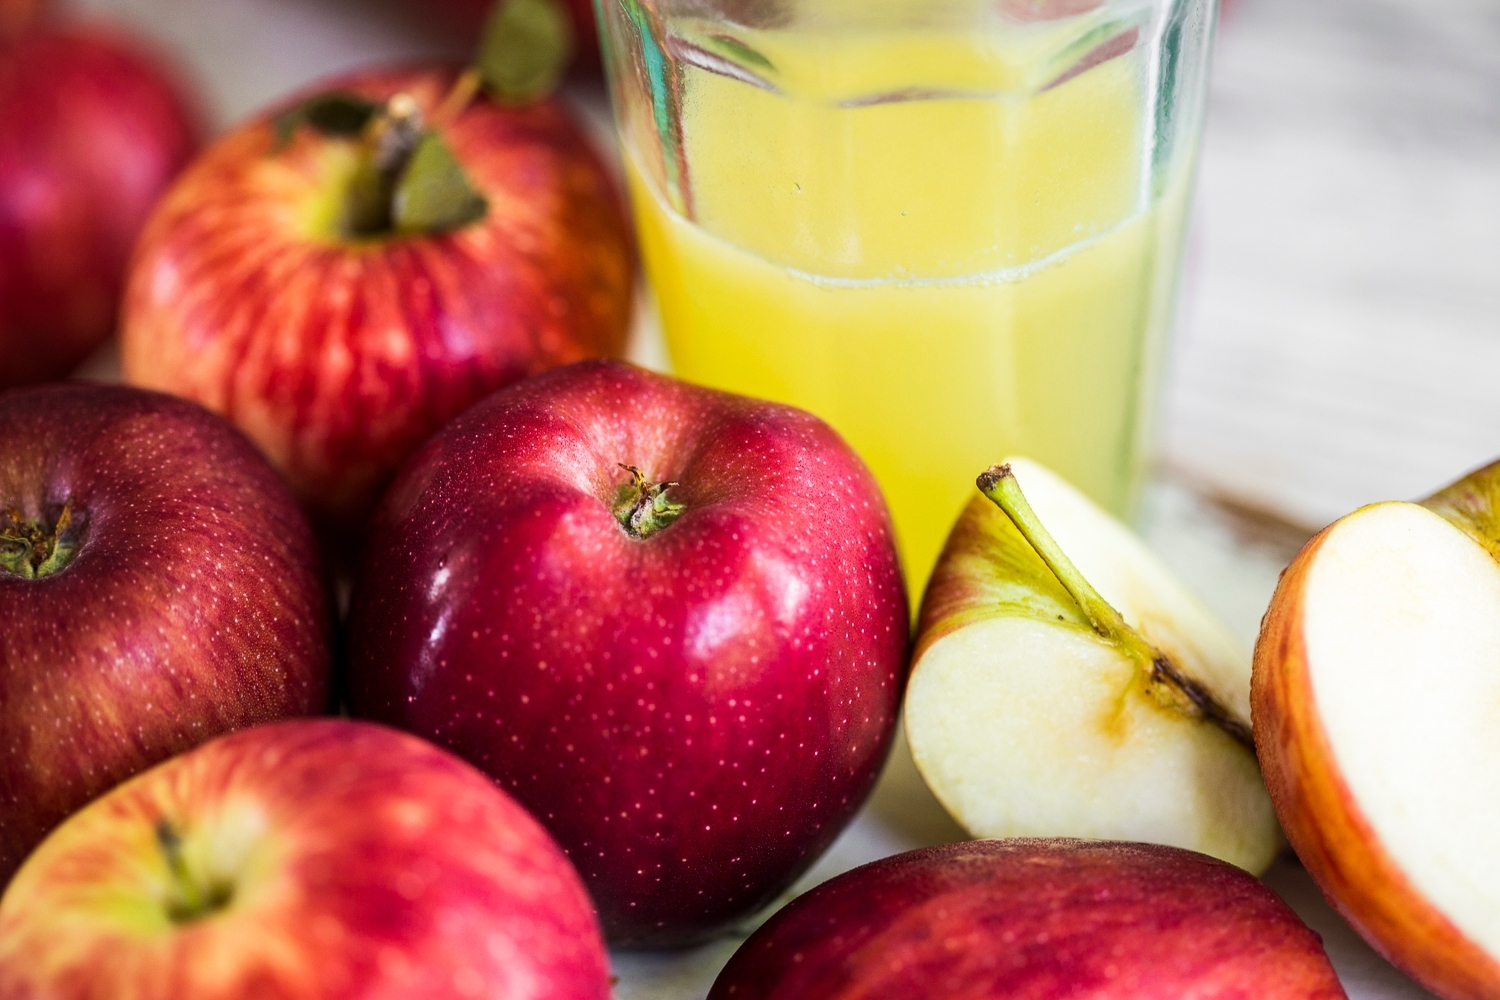 Juicing apples